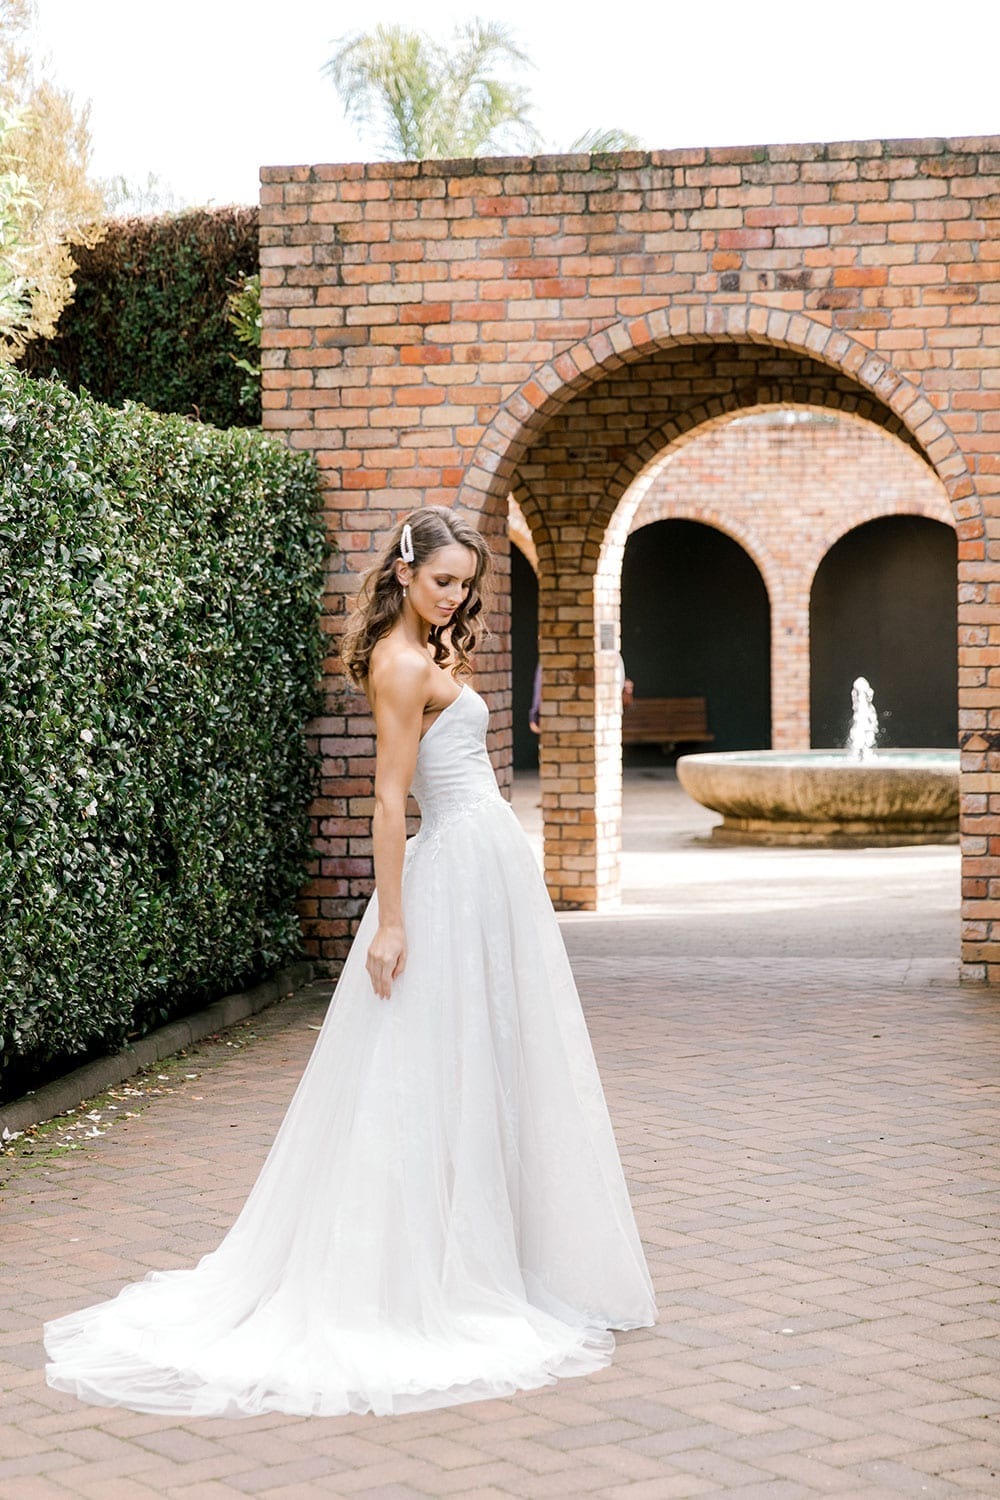 Model wearing Vinka Design Jasmine Wedding Dress, a Strapless Classic Wedding Gown at a side angle showing train in front of brick arches in a garden